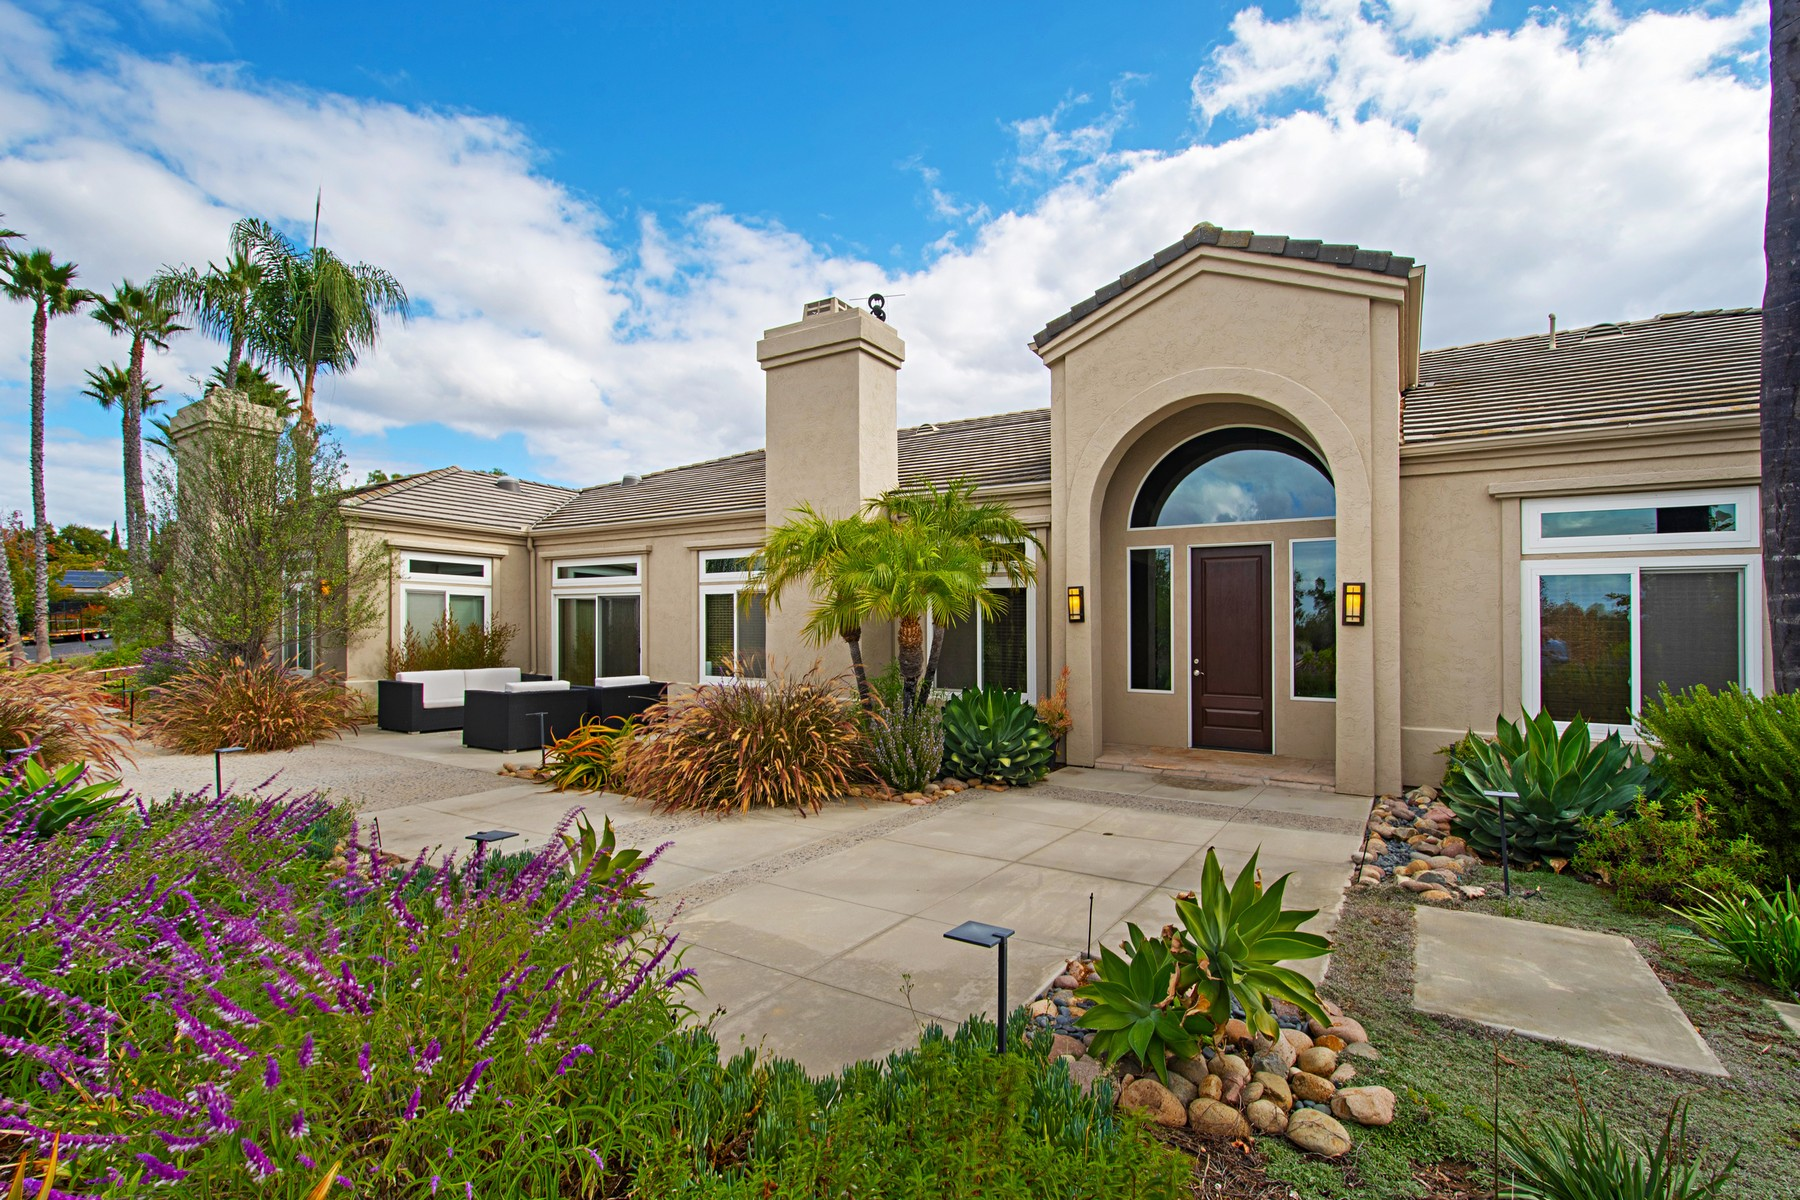 Single Family Home for Active at 16125 Country Day 16125 Country Day Rd Poway, California 92064 United States